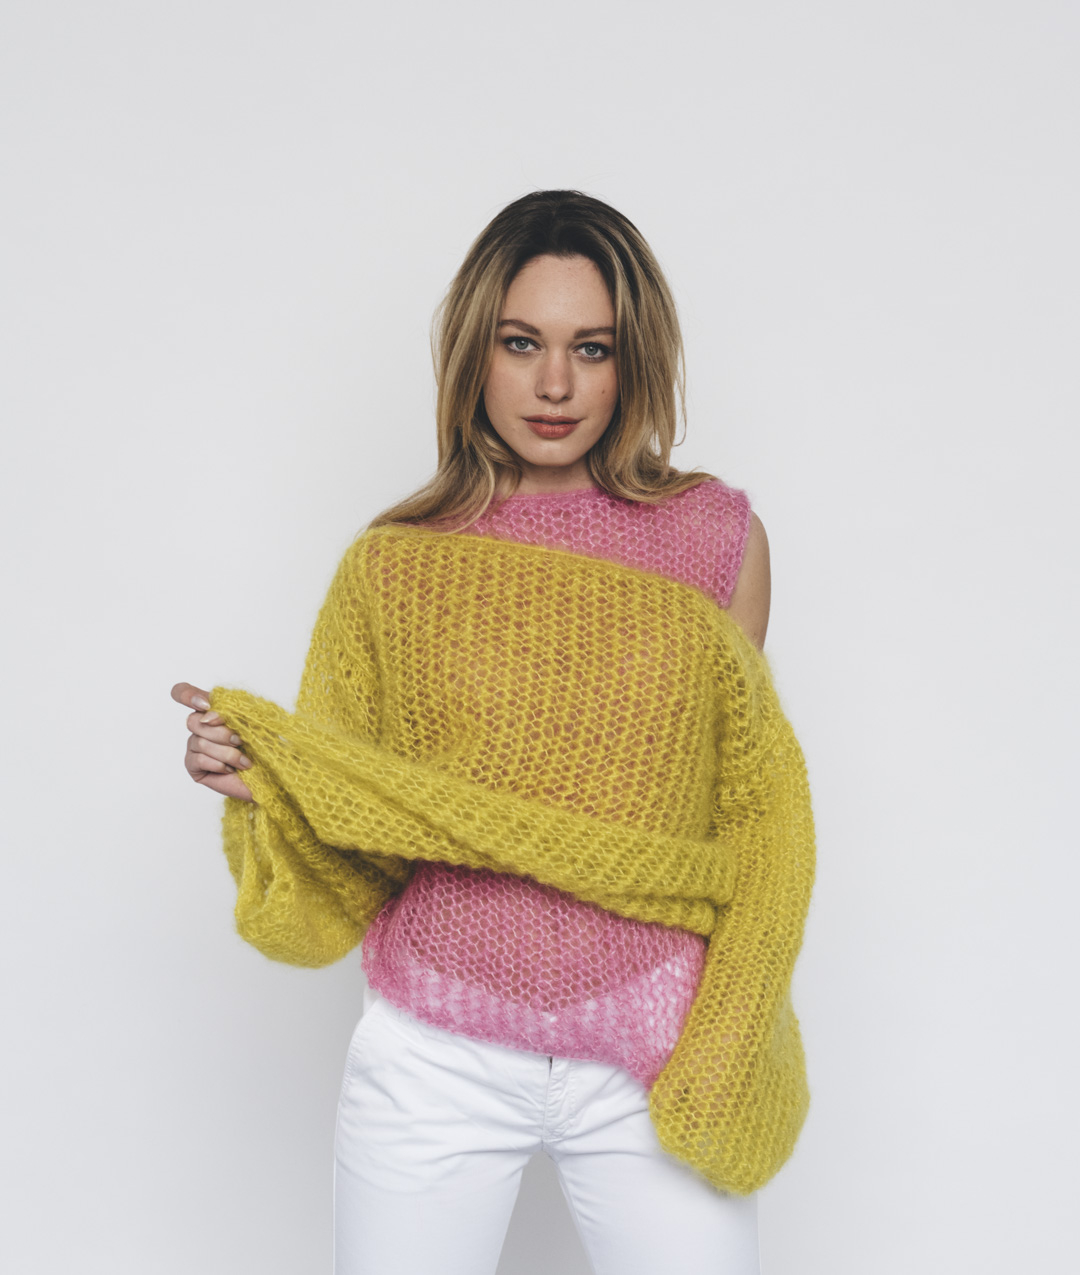 Sweaters and Tops - Wool - GLADYS SWEATER - 1